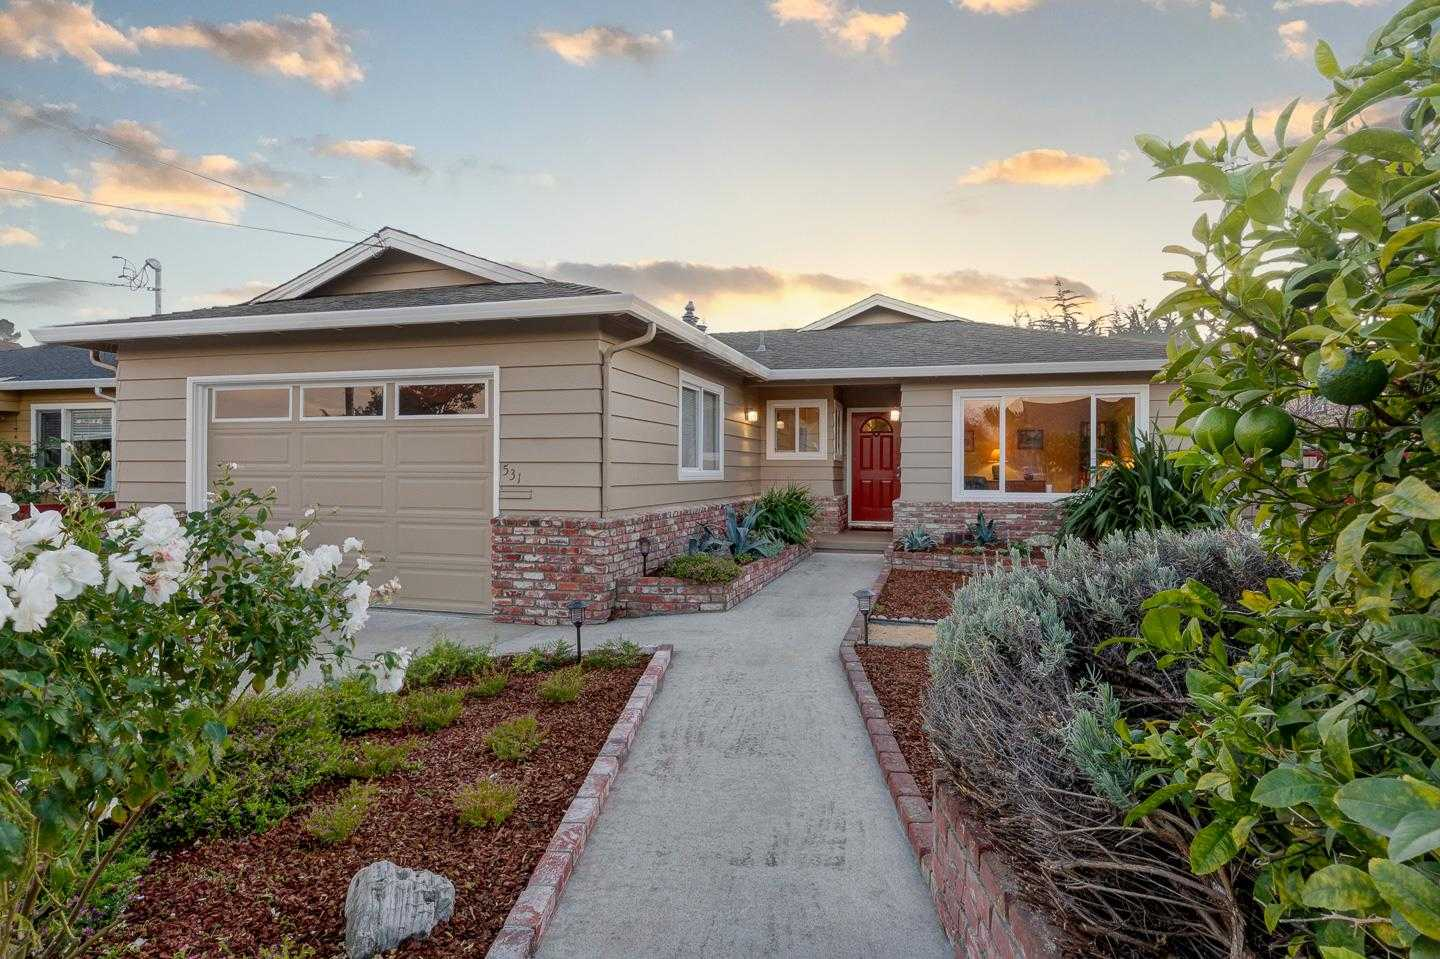 $1,425,000 - 3Br/2Ba -  for Sale in Santa Cruz